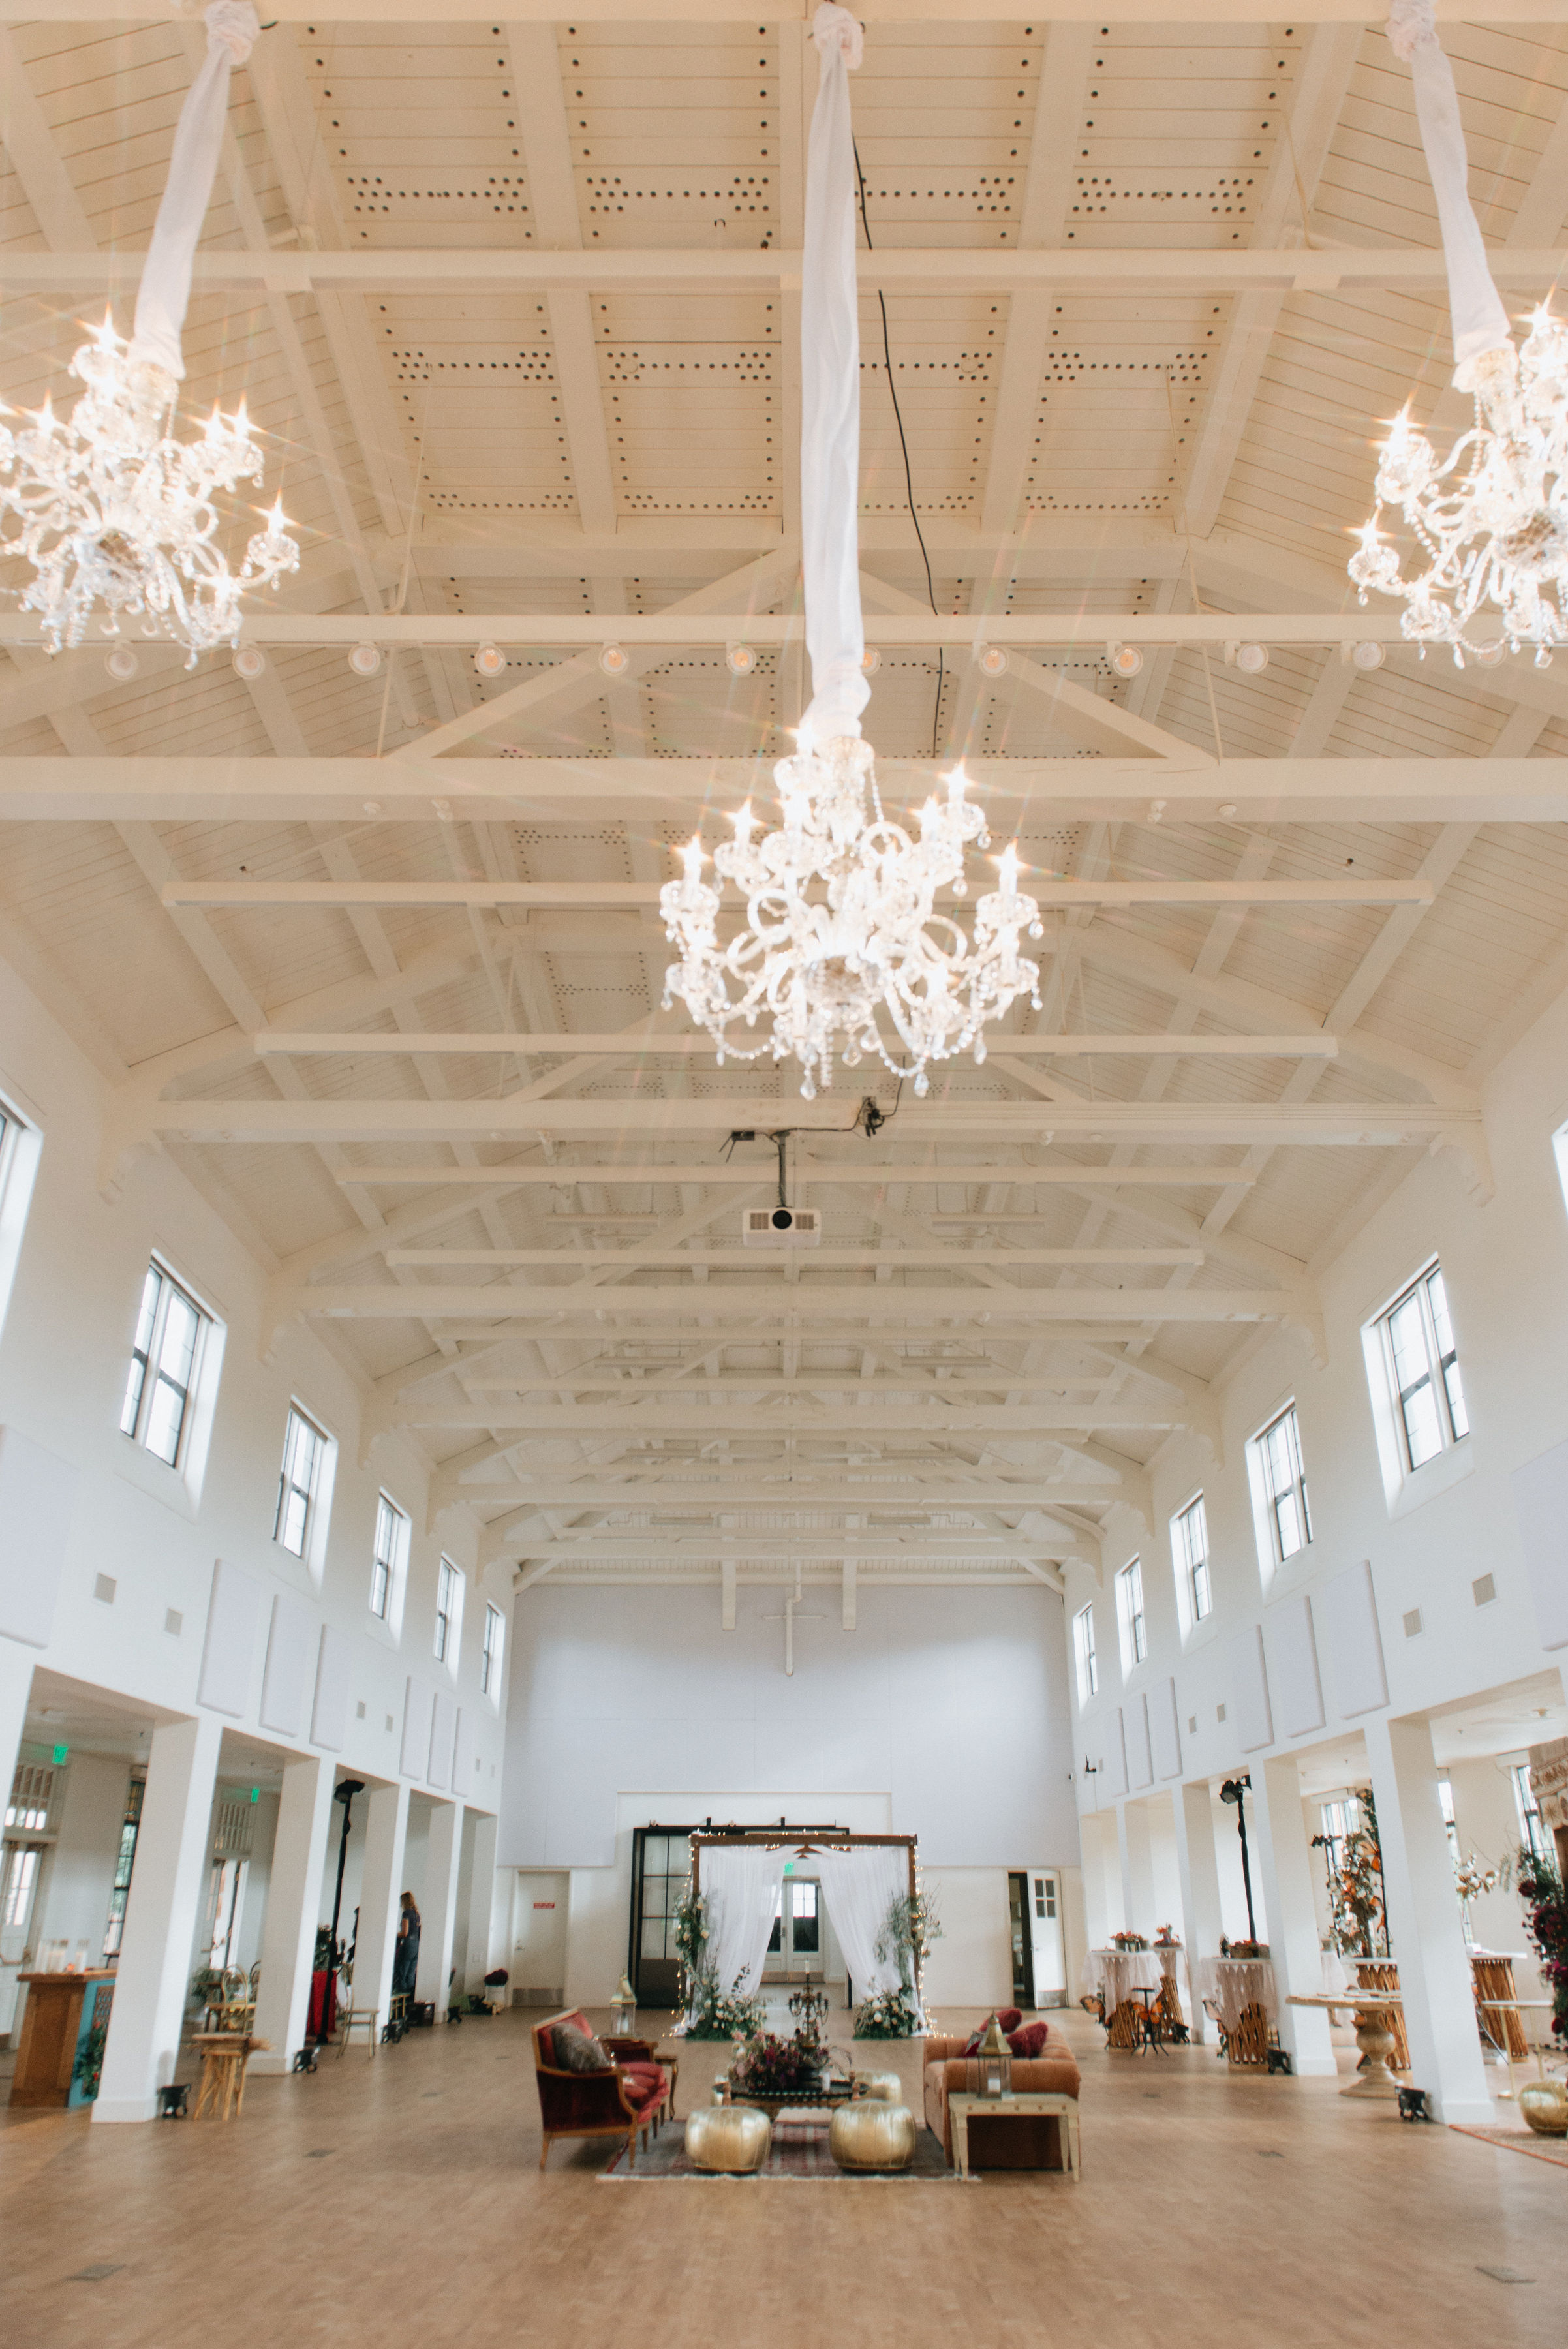 We're always obsessed with new installations and lighting hung from our grand beams and high ceilings! Great job Brilliant Event Lighting for these stunning chandeliers.